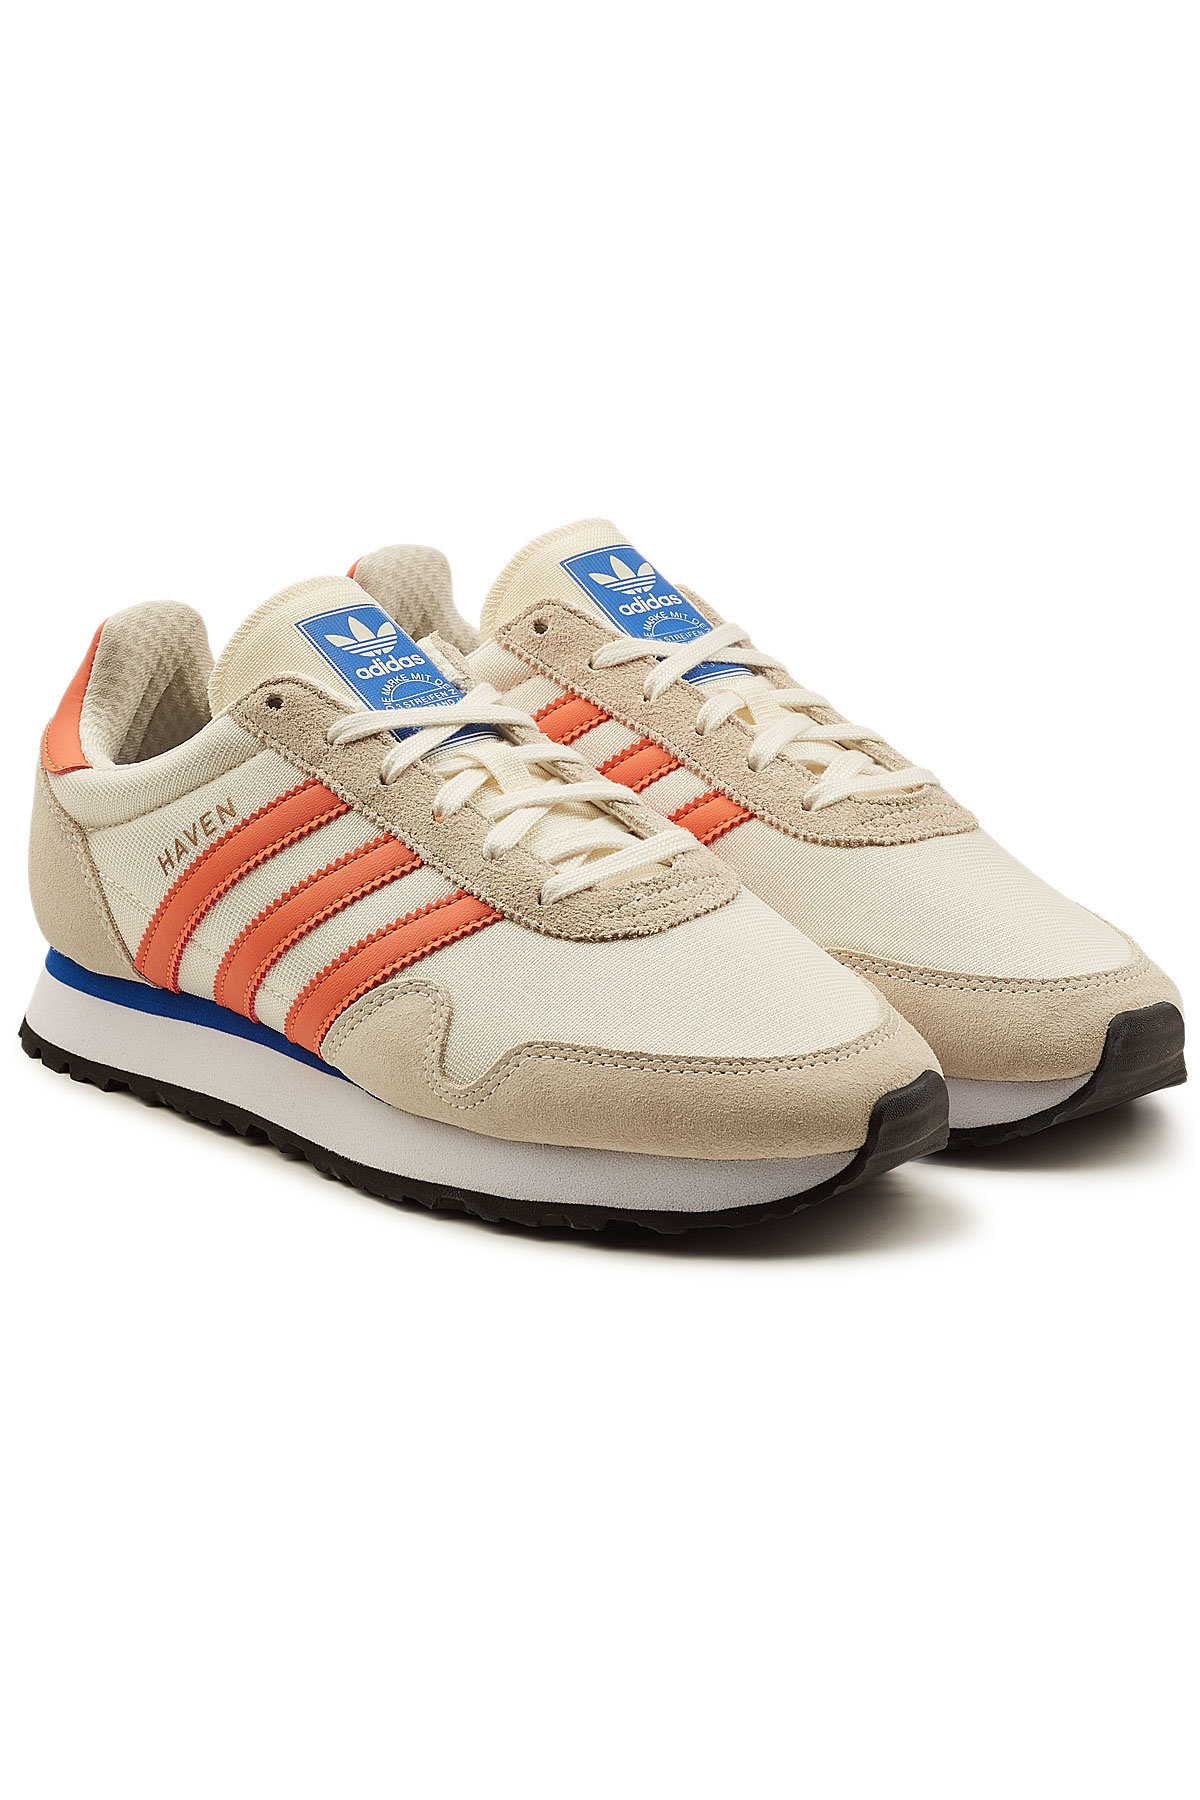 adidas Haven Sneakers with Suede Gr. UK 7.5 VUppjxM